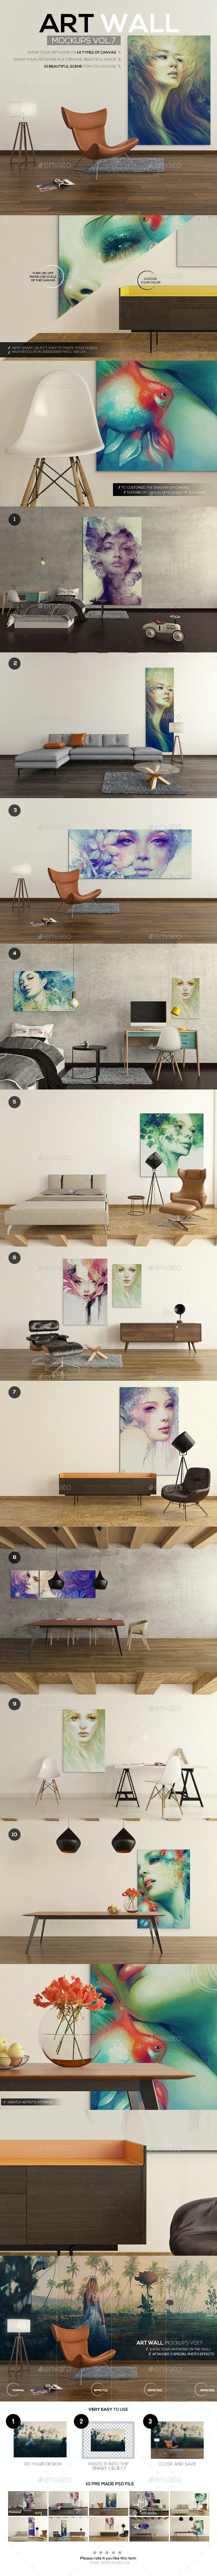 Art Wall Mockups Vol7 - Miscellaneous Print